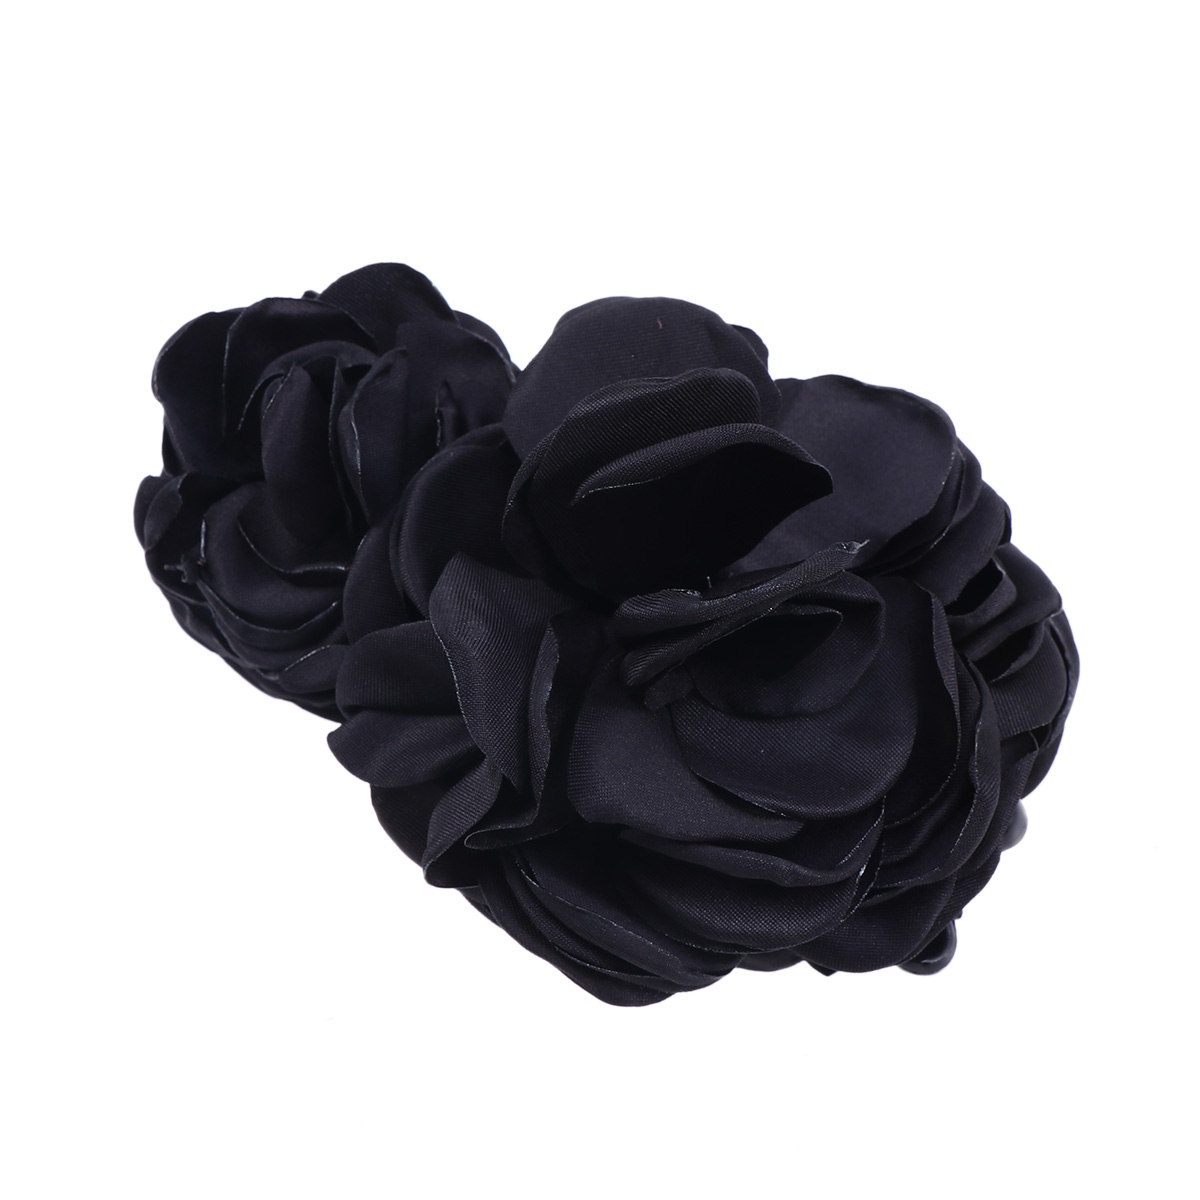 black Creative Women Artificial Hair Clip Barrette Ponytail Holder Elegant Headdress Ponytail Holder For Hair Styling Outstanding Features